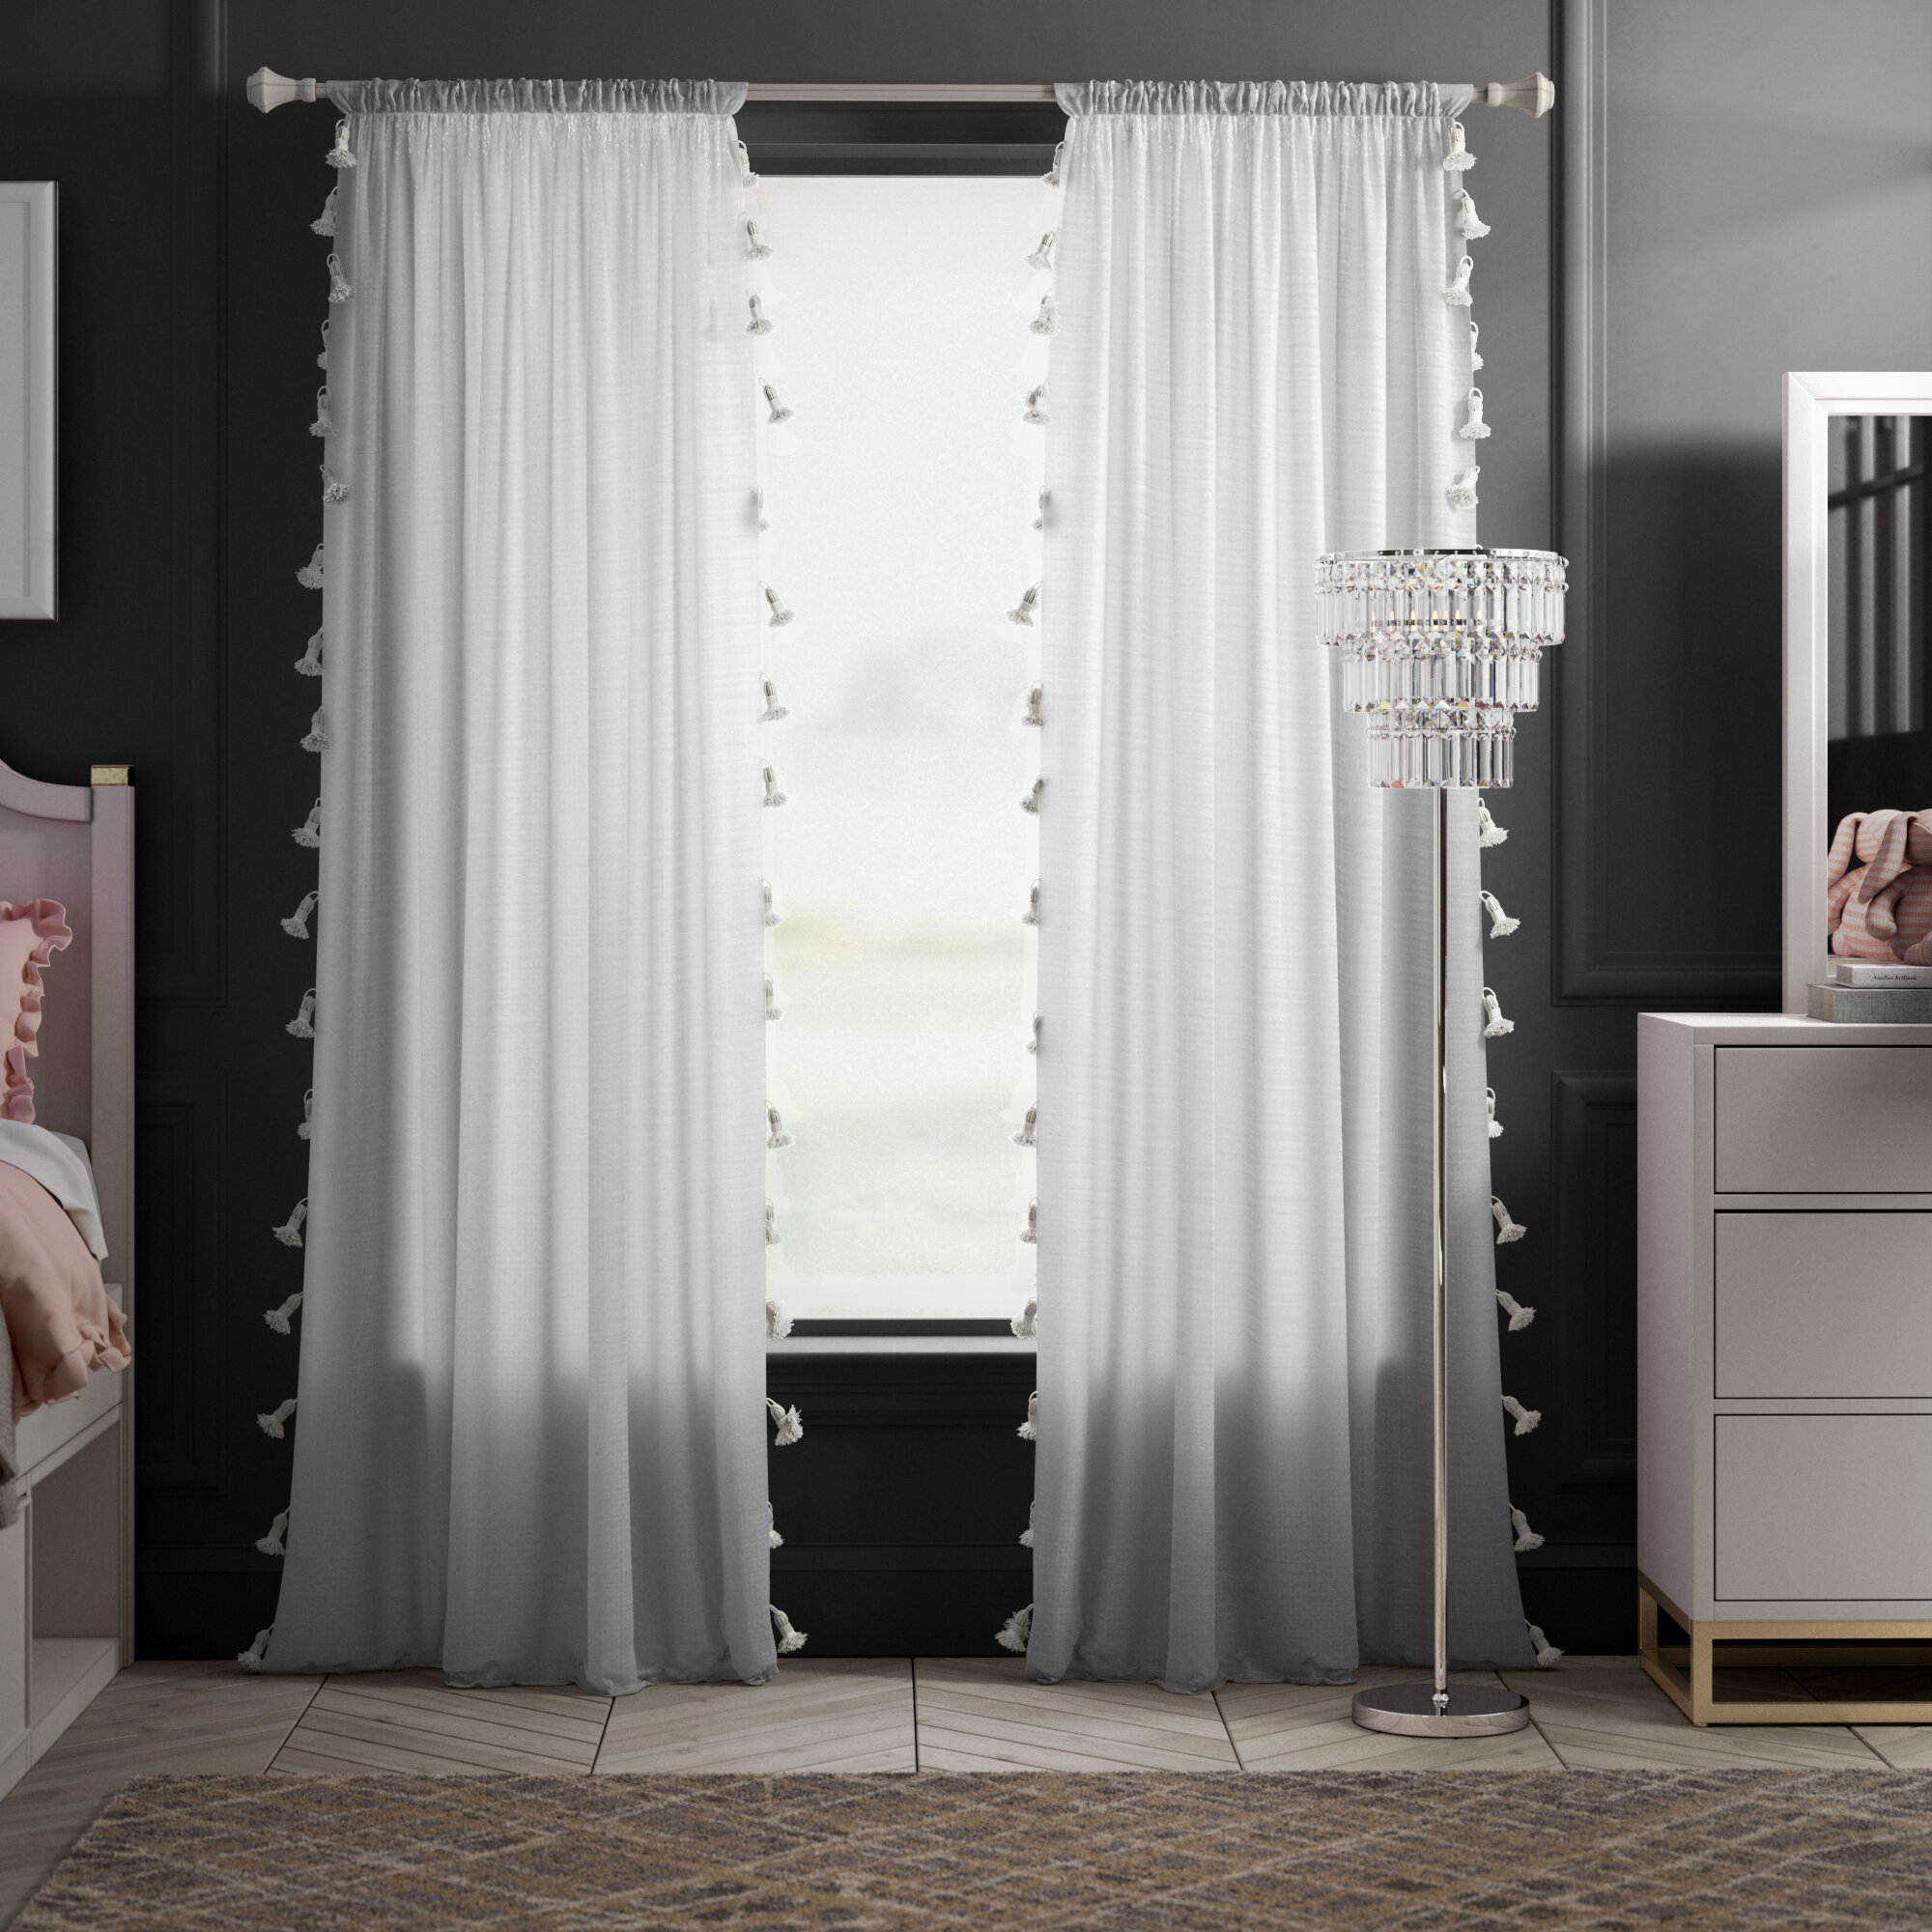 Eider & Ivory Alexis Solid Semi Sheer Rod Pocket Single In Tassels Applique Sheer Rod Pocket Top Curtain Panel Pairs (View 12 of 30)